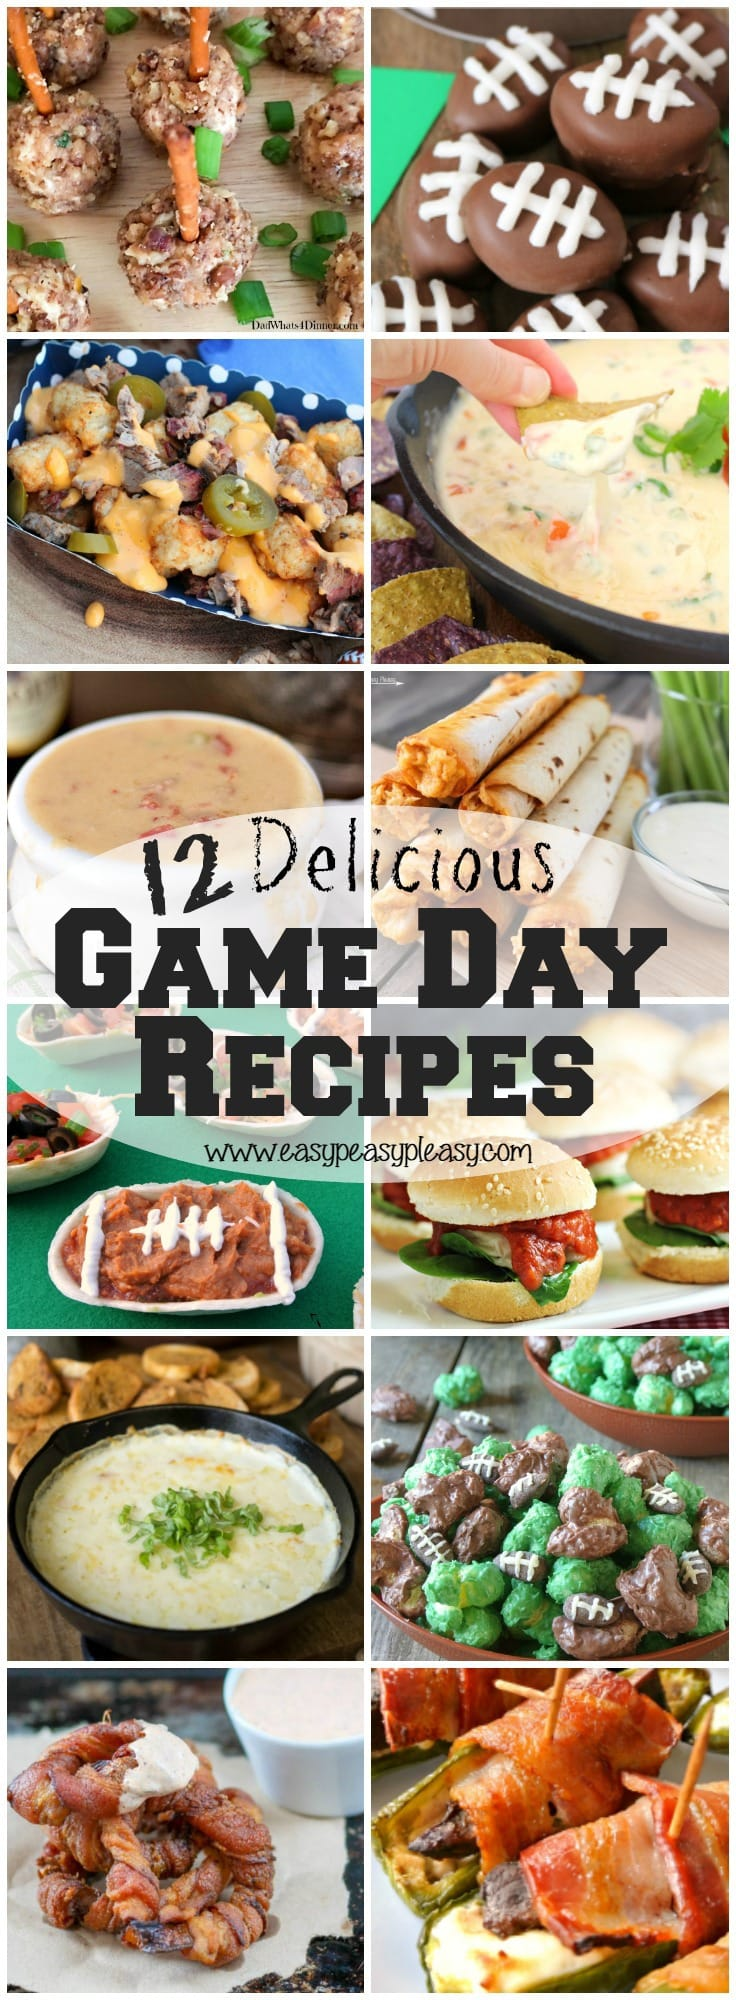 12 Deliciously Easy Super Bowl Food Ideas That Will Have You Winning on Game Day!